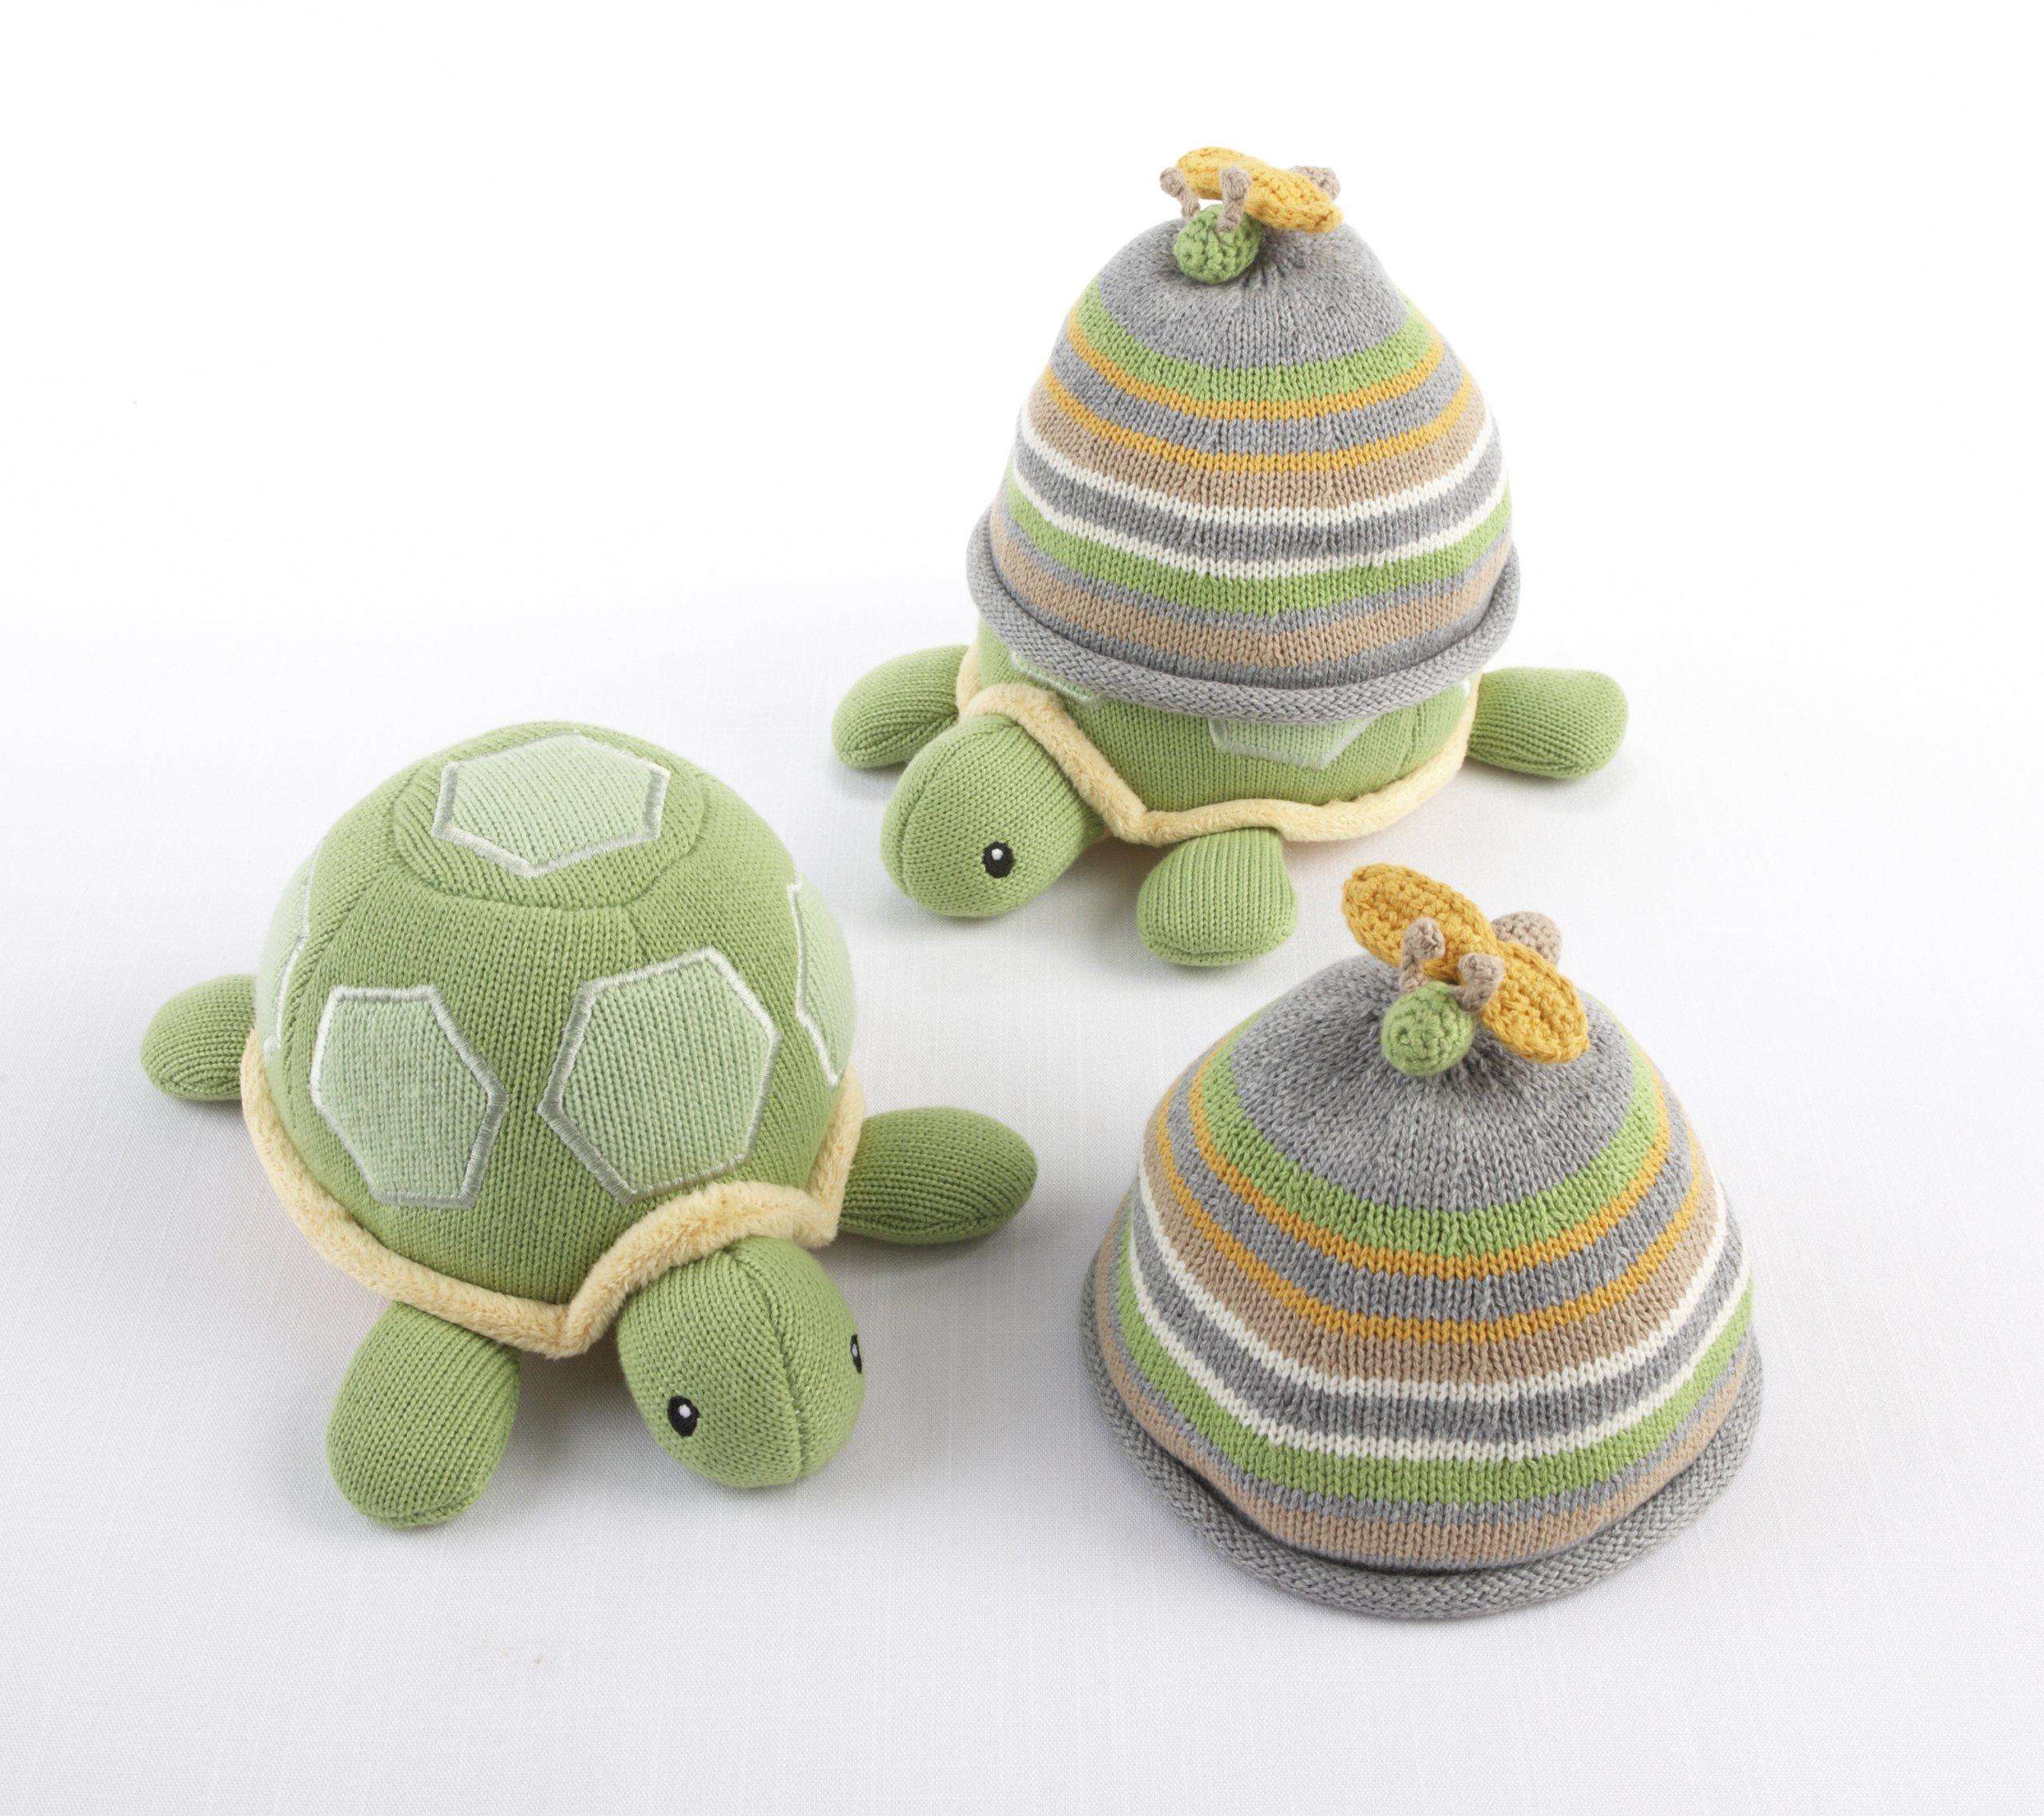 Baby Aspen Turtle Toppers Baby Hat and Turtle Plush Gift Set, Yellow by Baby Aspen (Image #2)